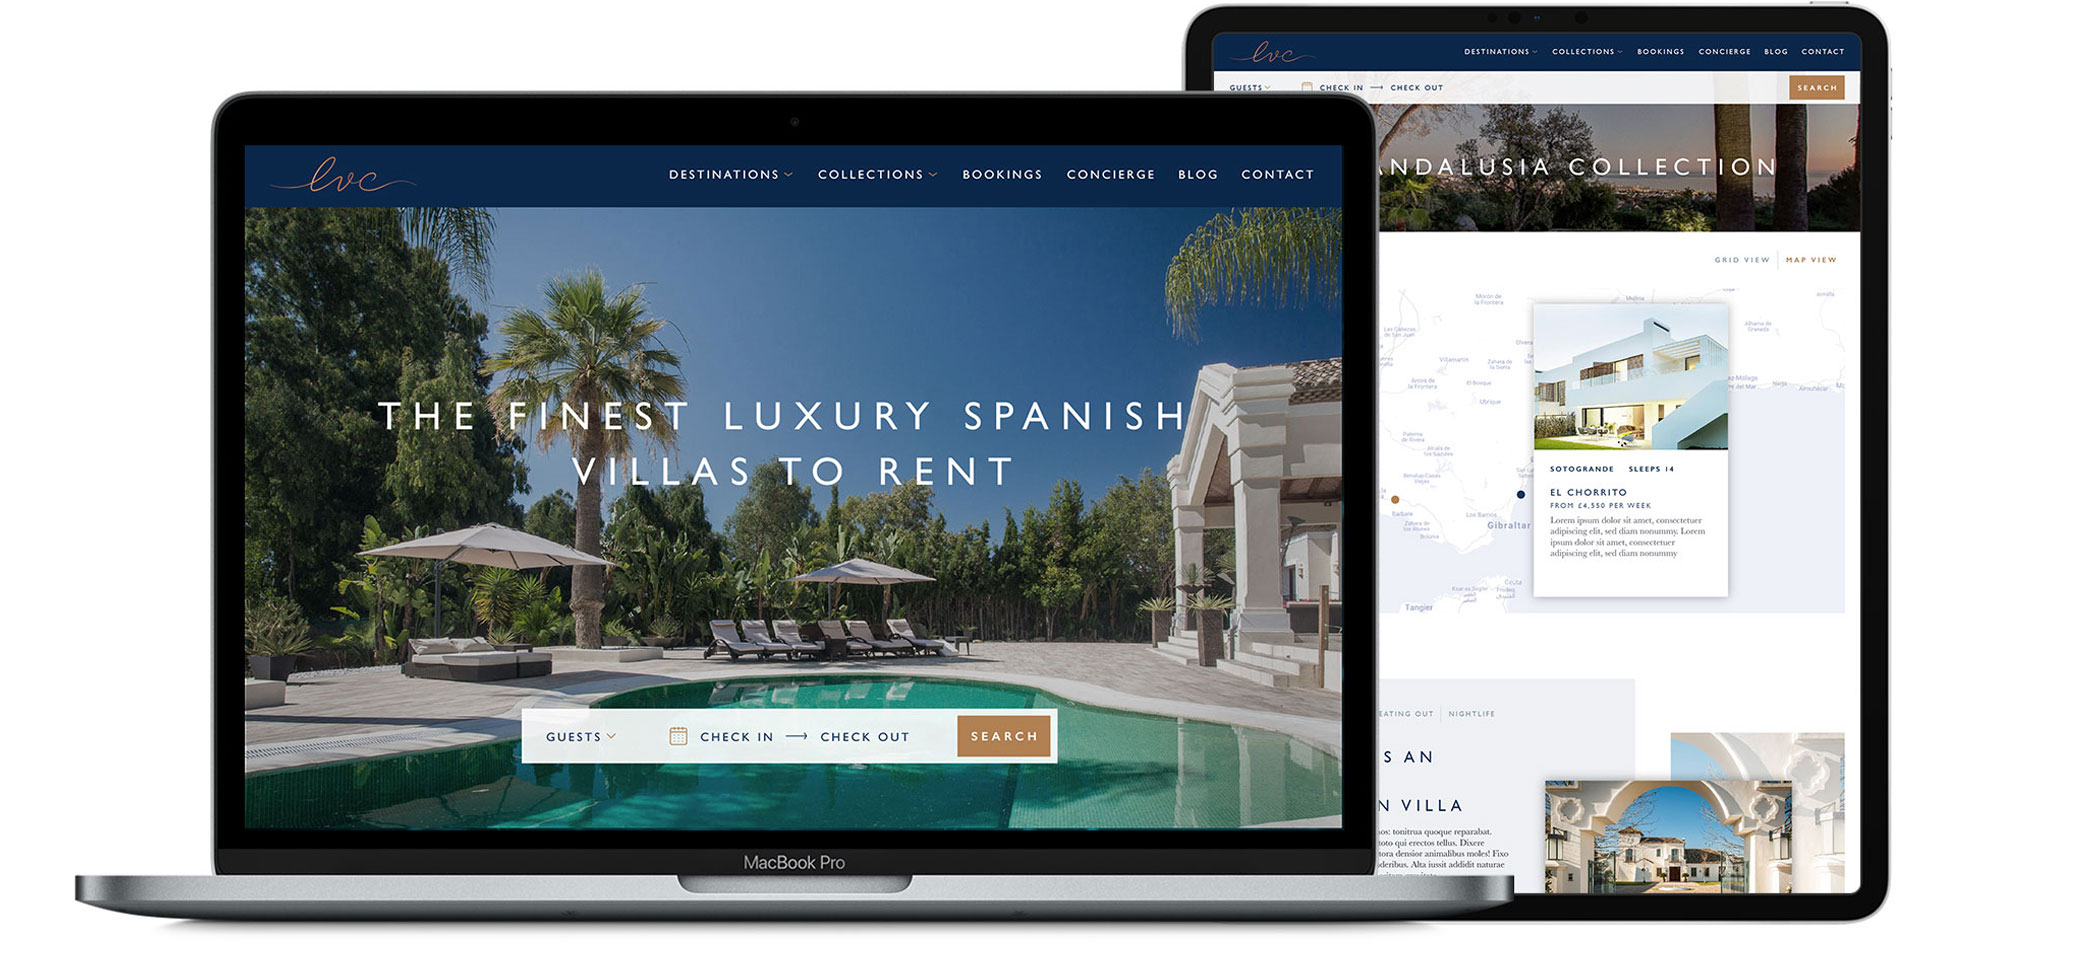 The Luxury Villa Collection website design on laptop and iPad